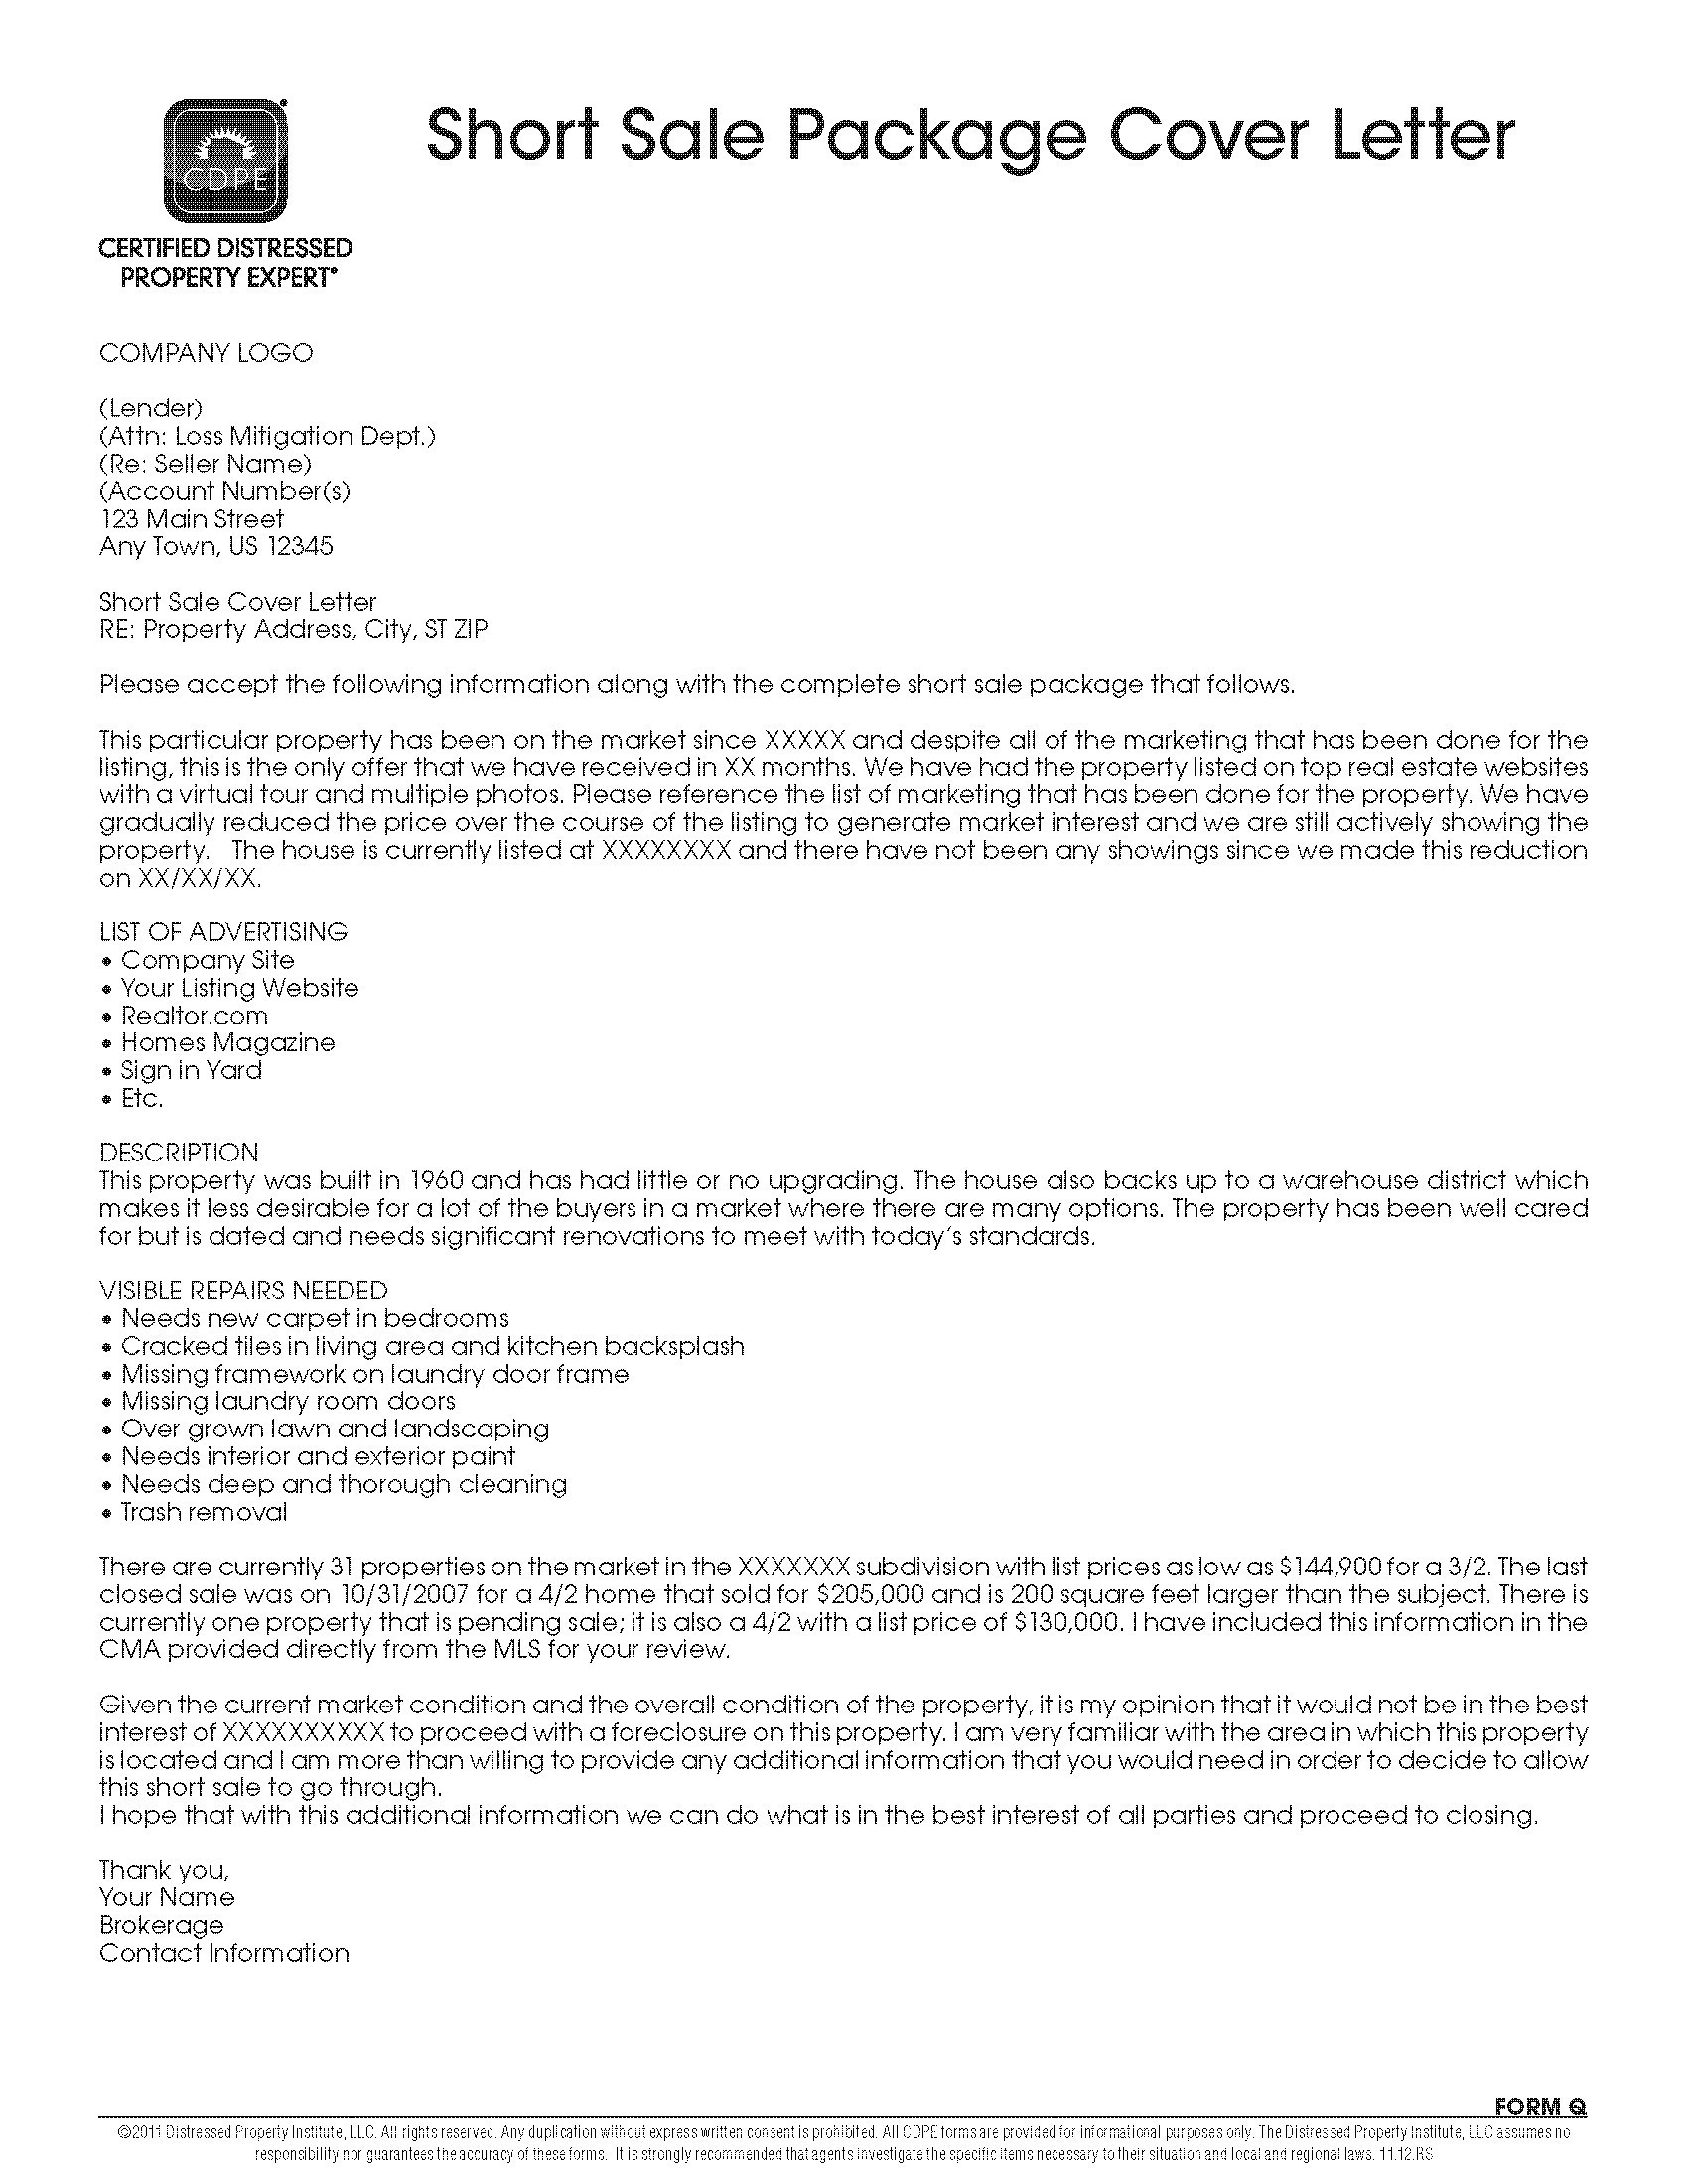 Letter to Home Seller From Buyer Template - Unique Corporate Express Templates